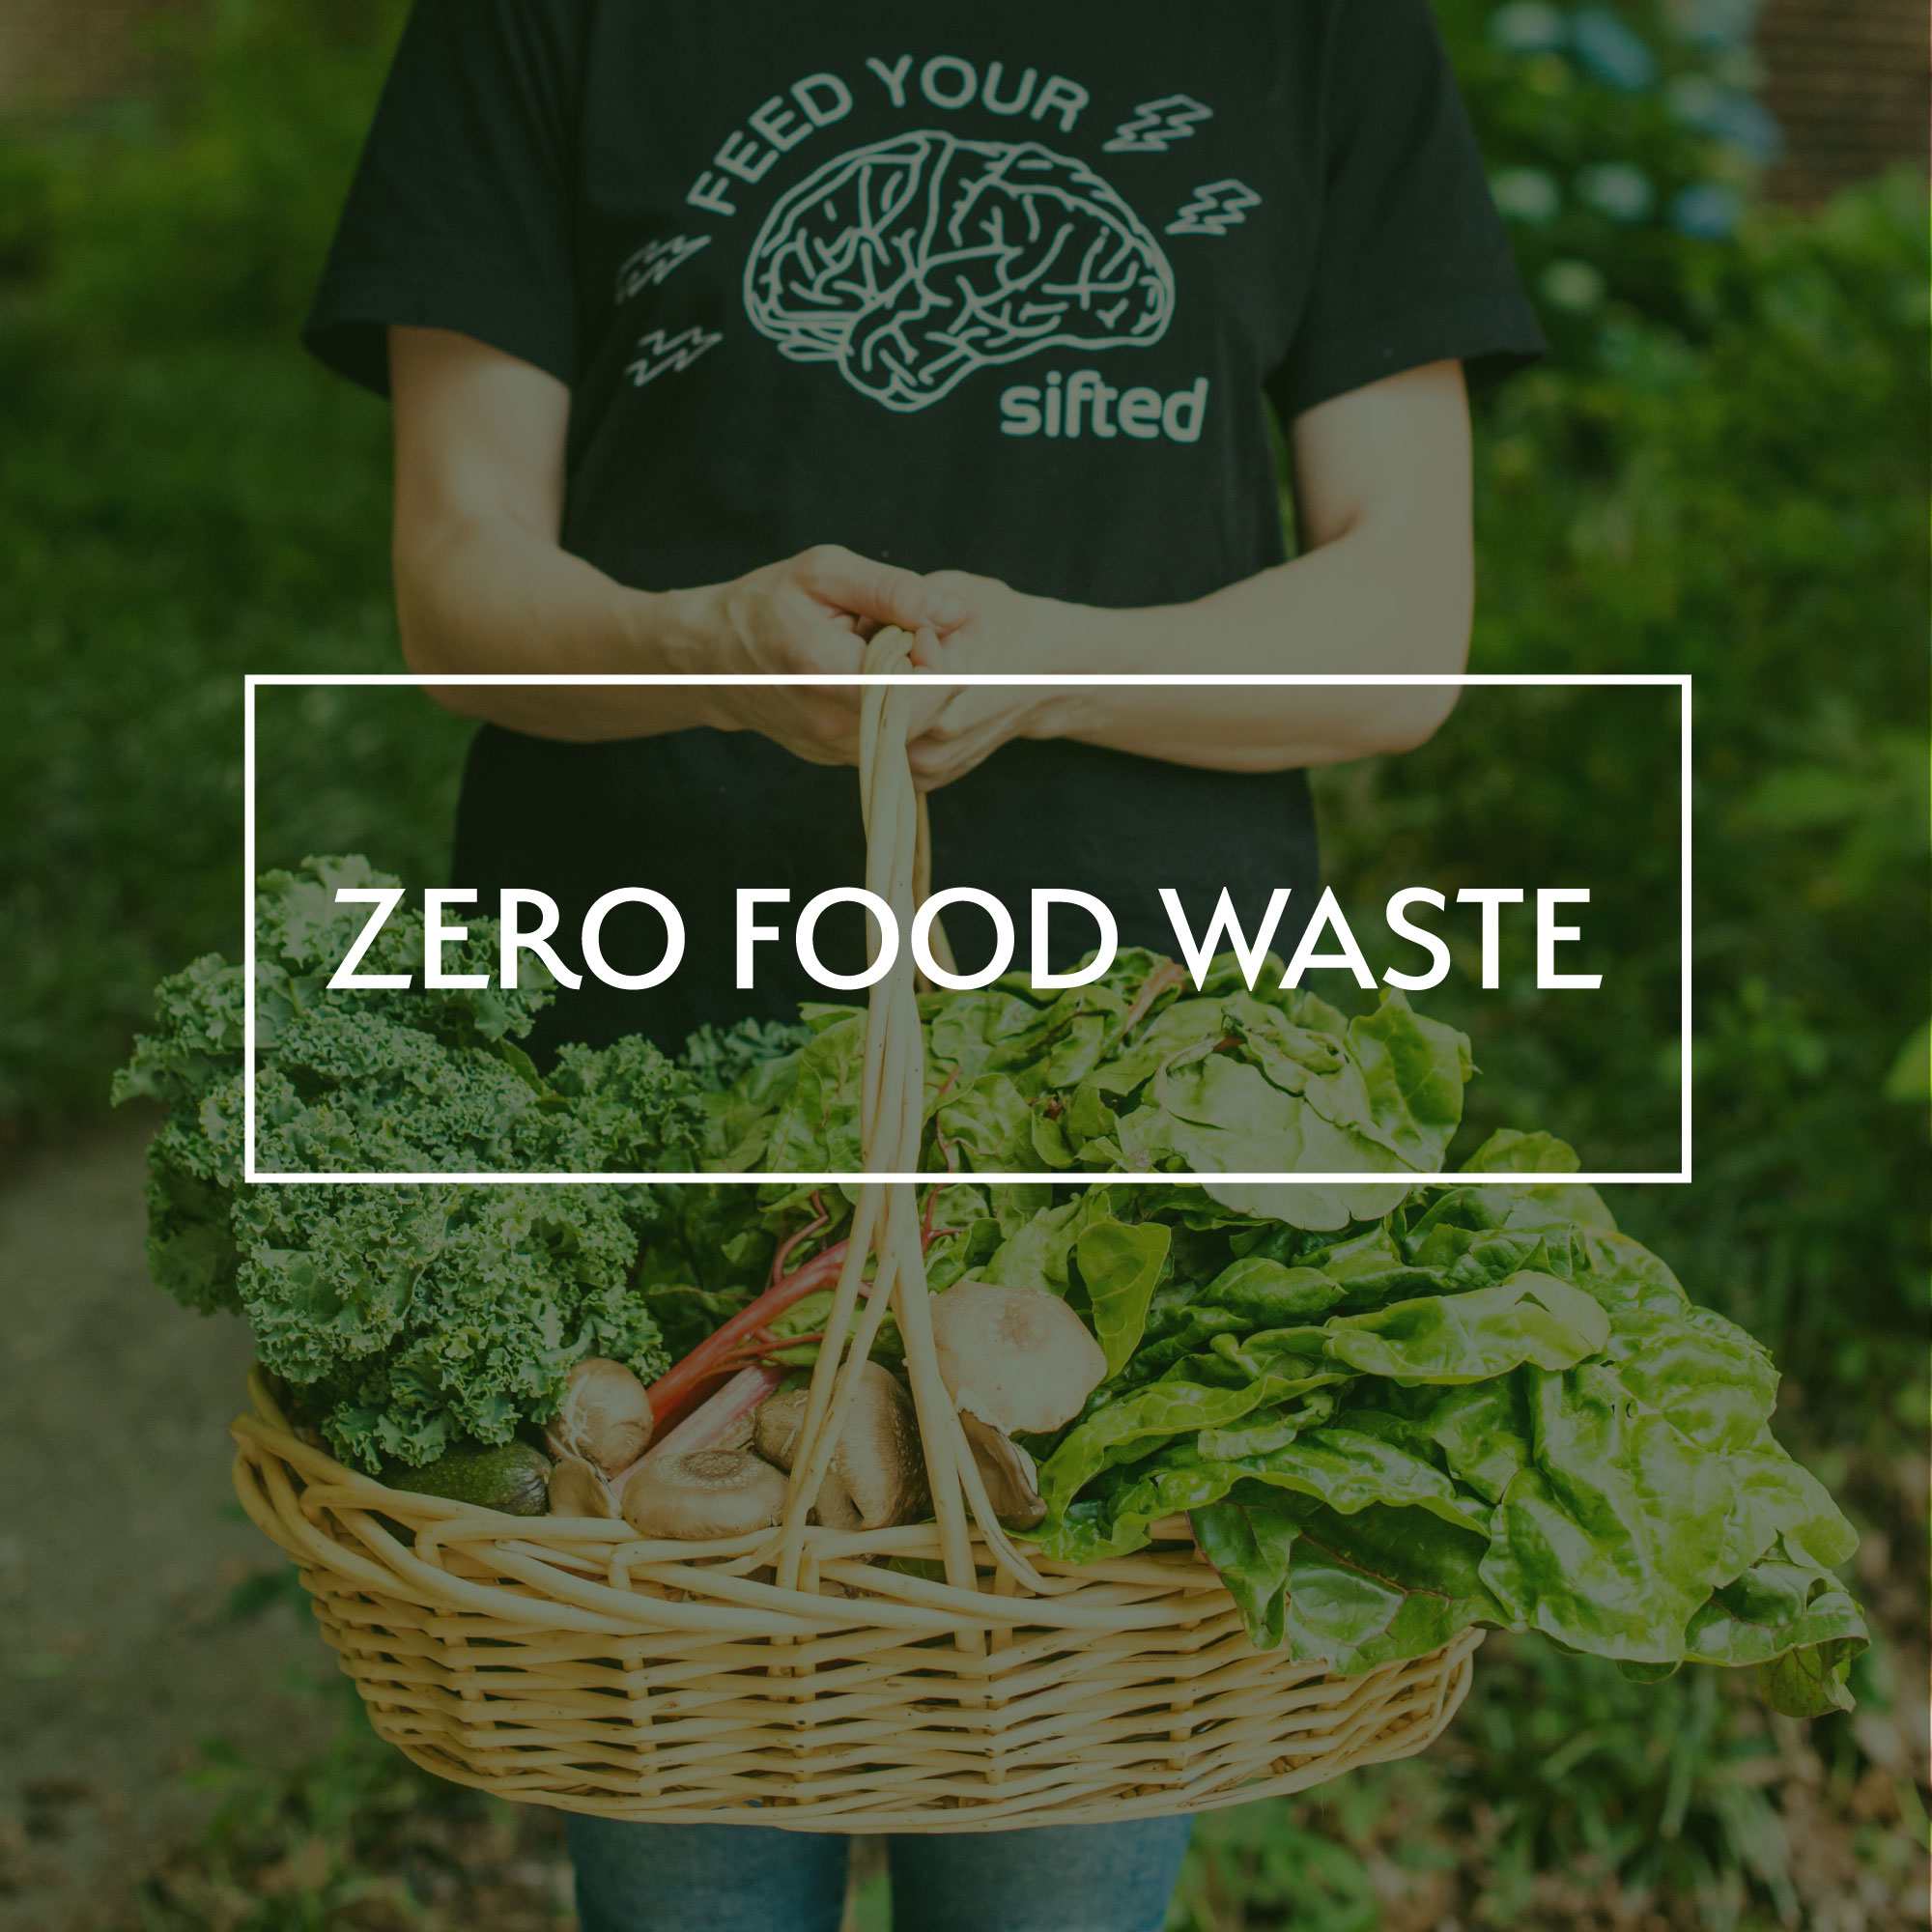 Sifted is making a commitment to Zero Food Waste